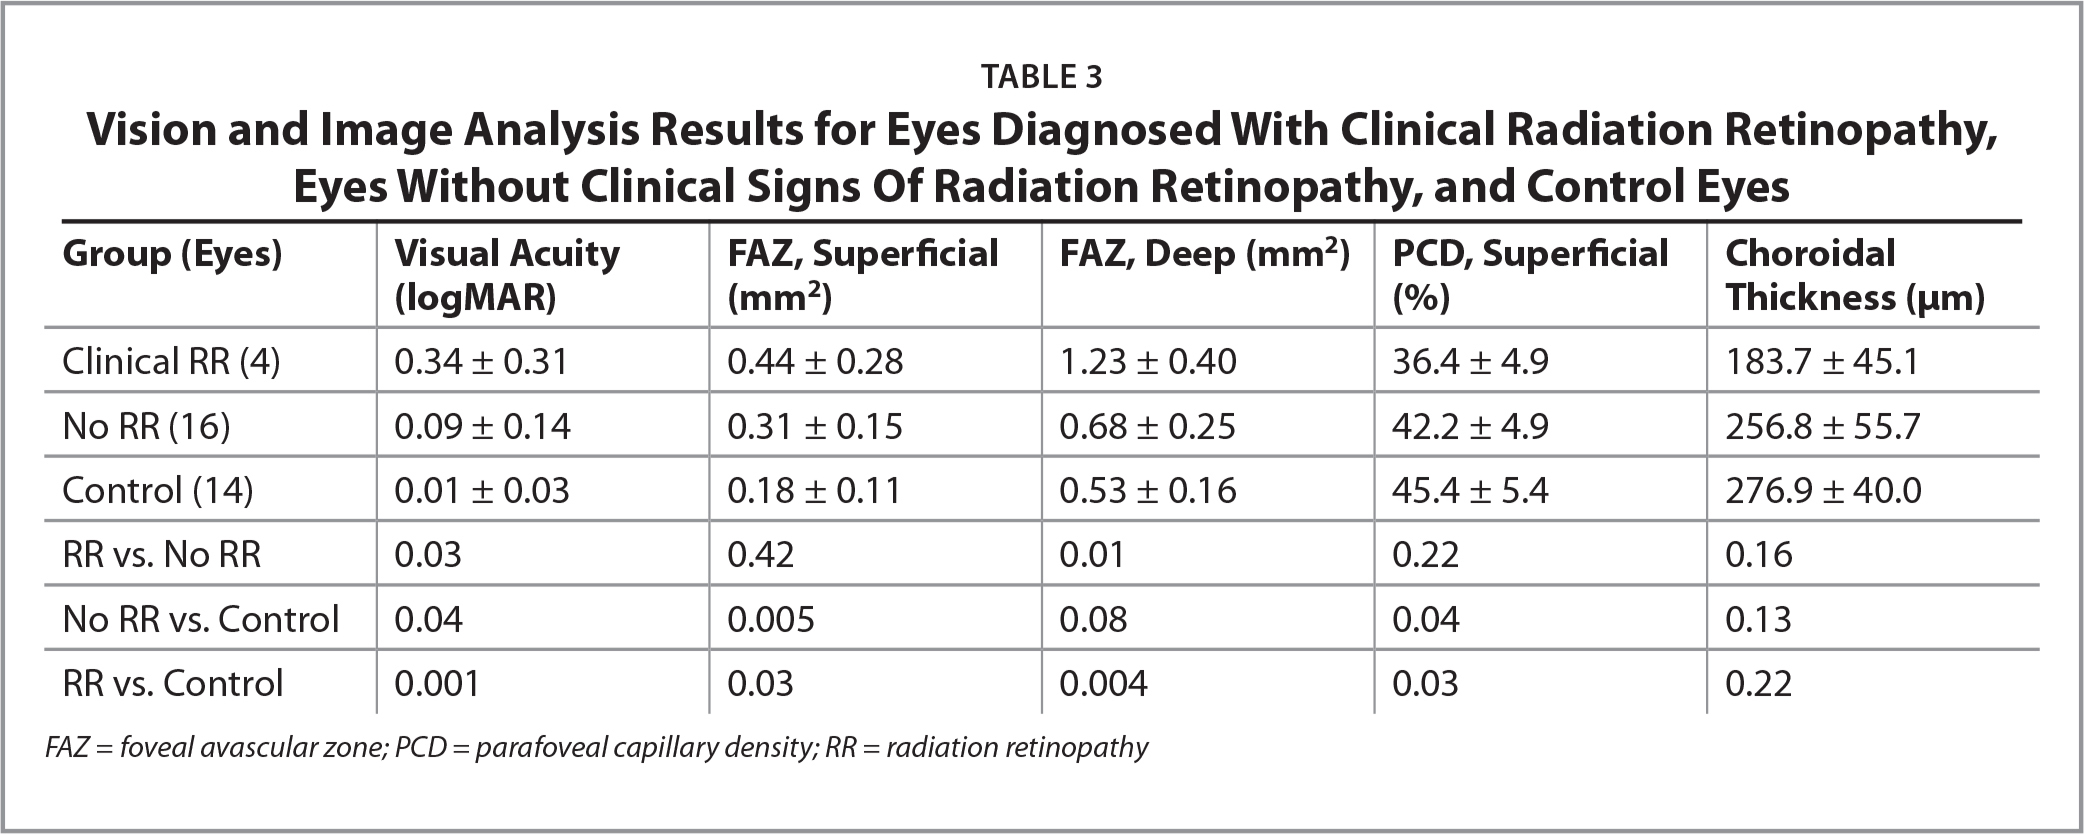 Vision and Image Analysis Results for Eyes Diagnosed With Clinical Radiation Retinopathy, Eyes Without Clinical Signs Of Radiation Retinopathy, and Control Eyes